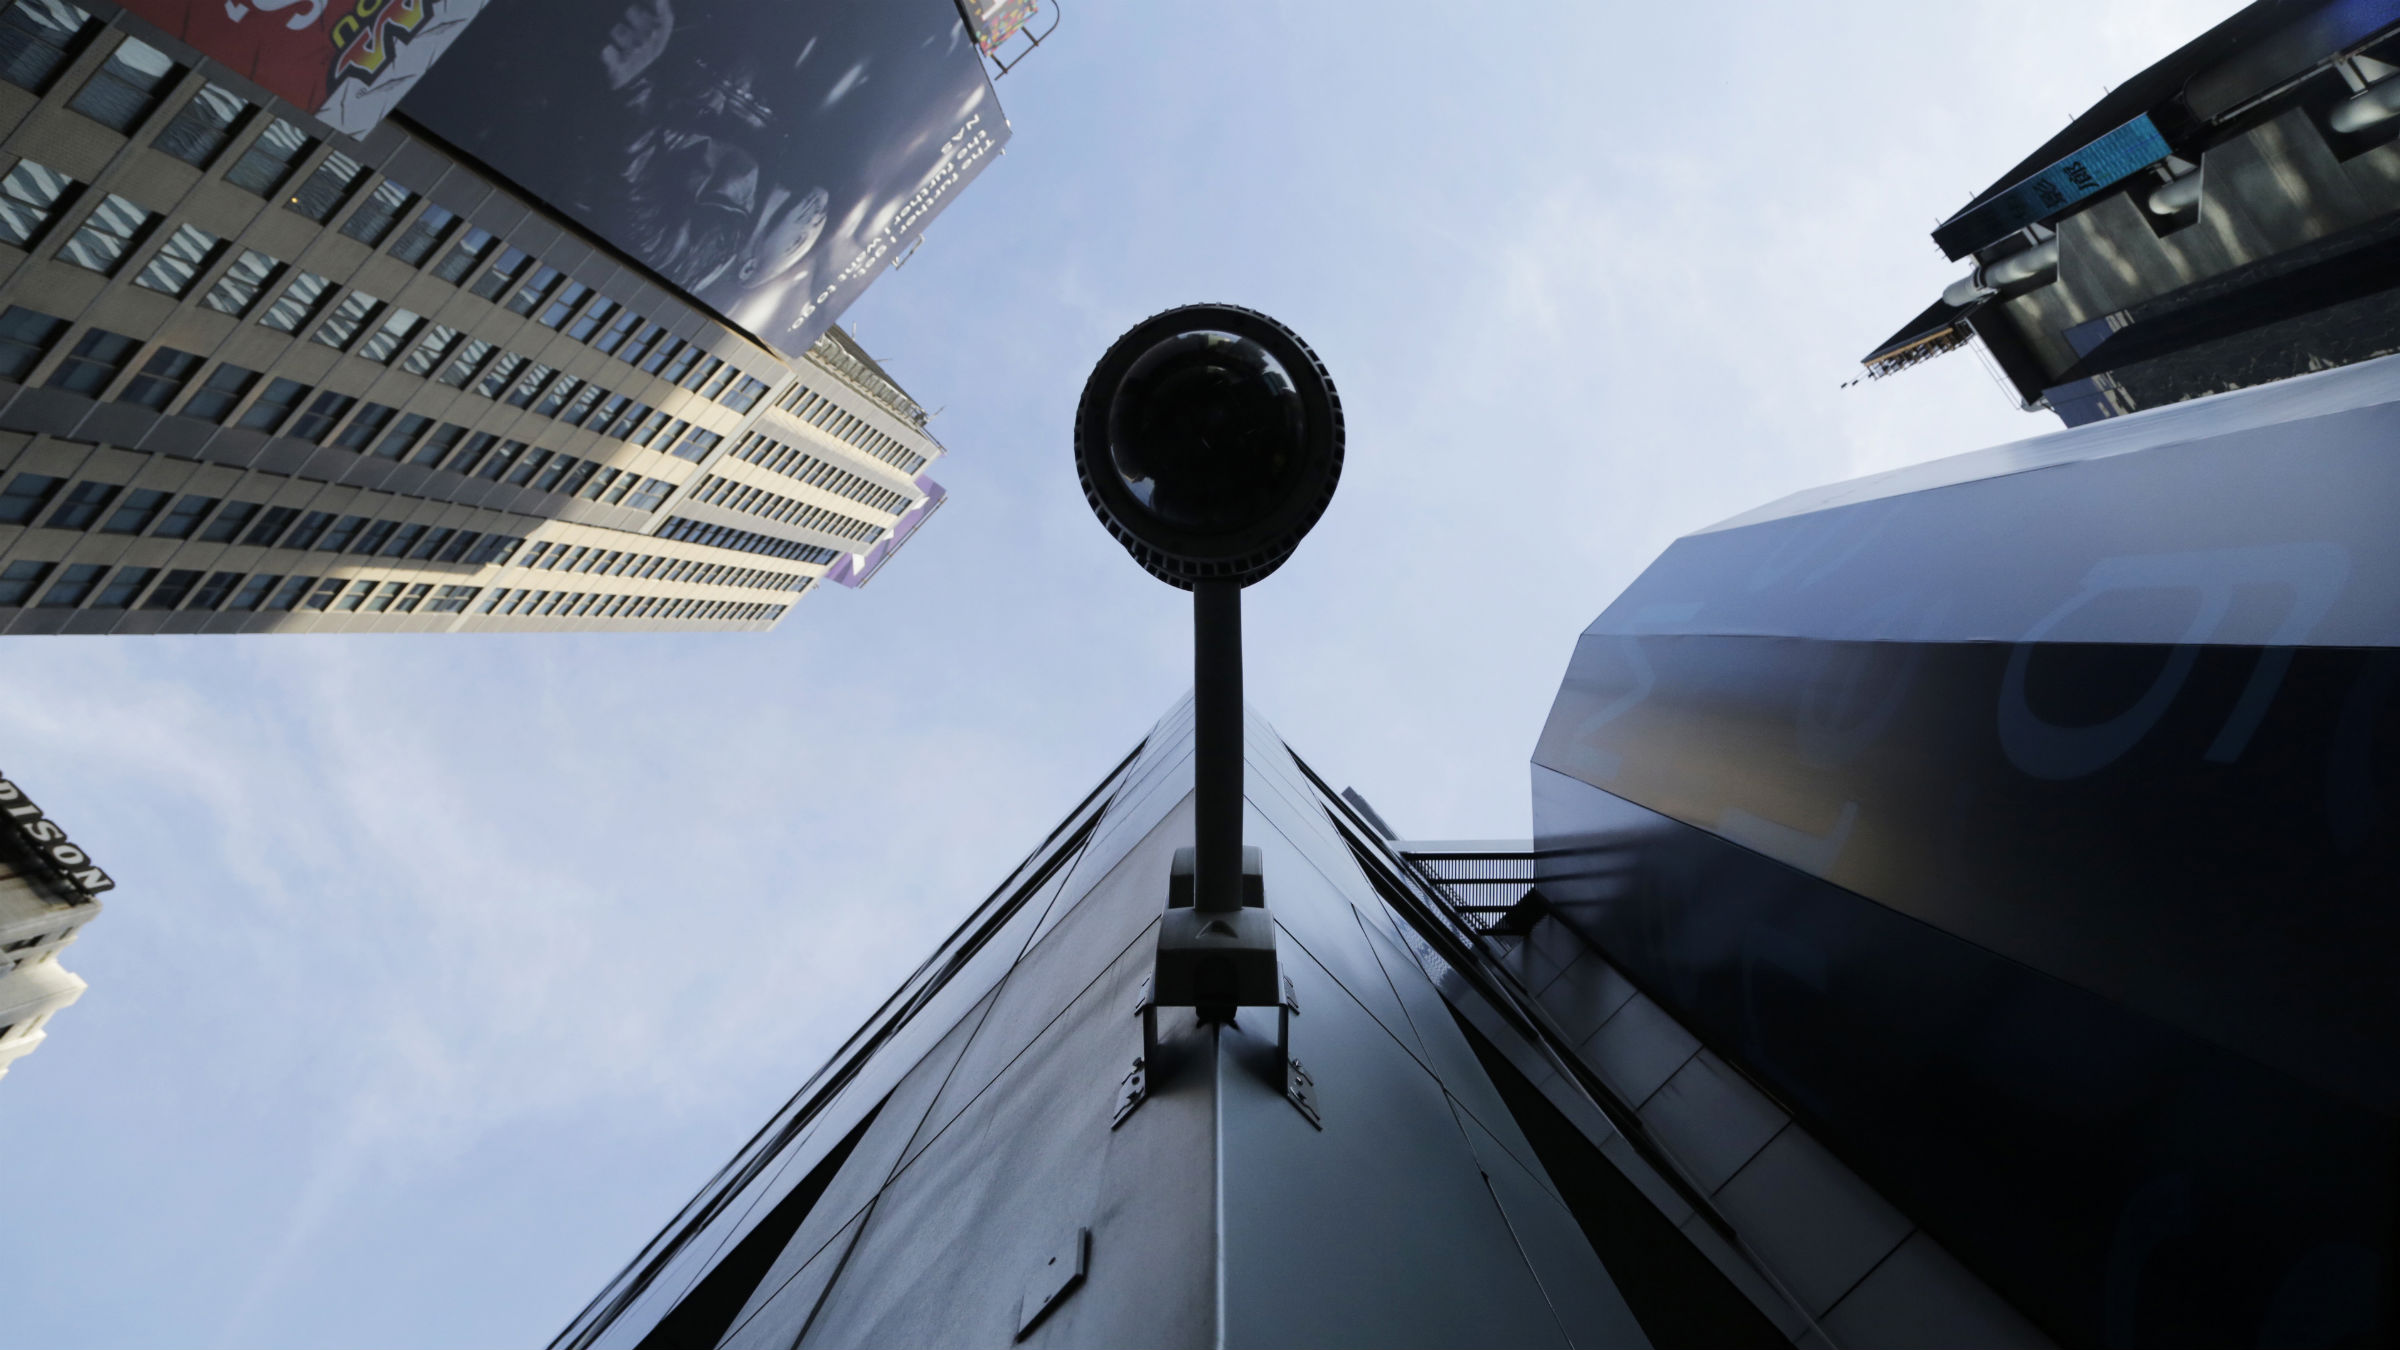 A security camera, center, is mounted on the side of a building overlooking an intersection in midtown Manhattan, Wednesday, July 31, 2013 in New York.